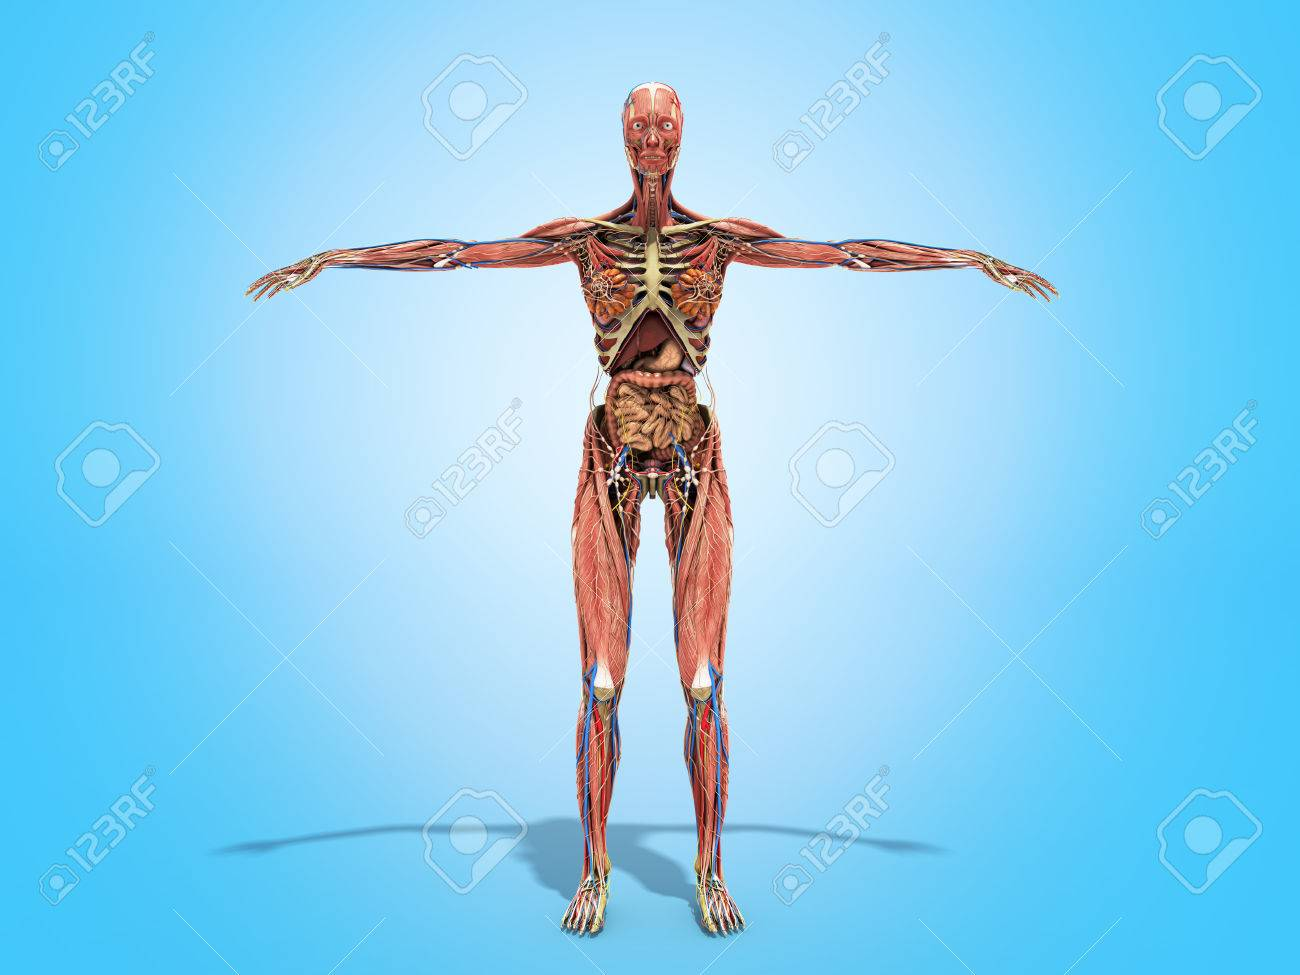 A Woman Body For Books On Anatomy 3d Render On Blue Stock Photo ...